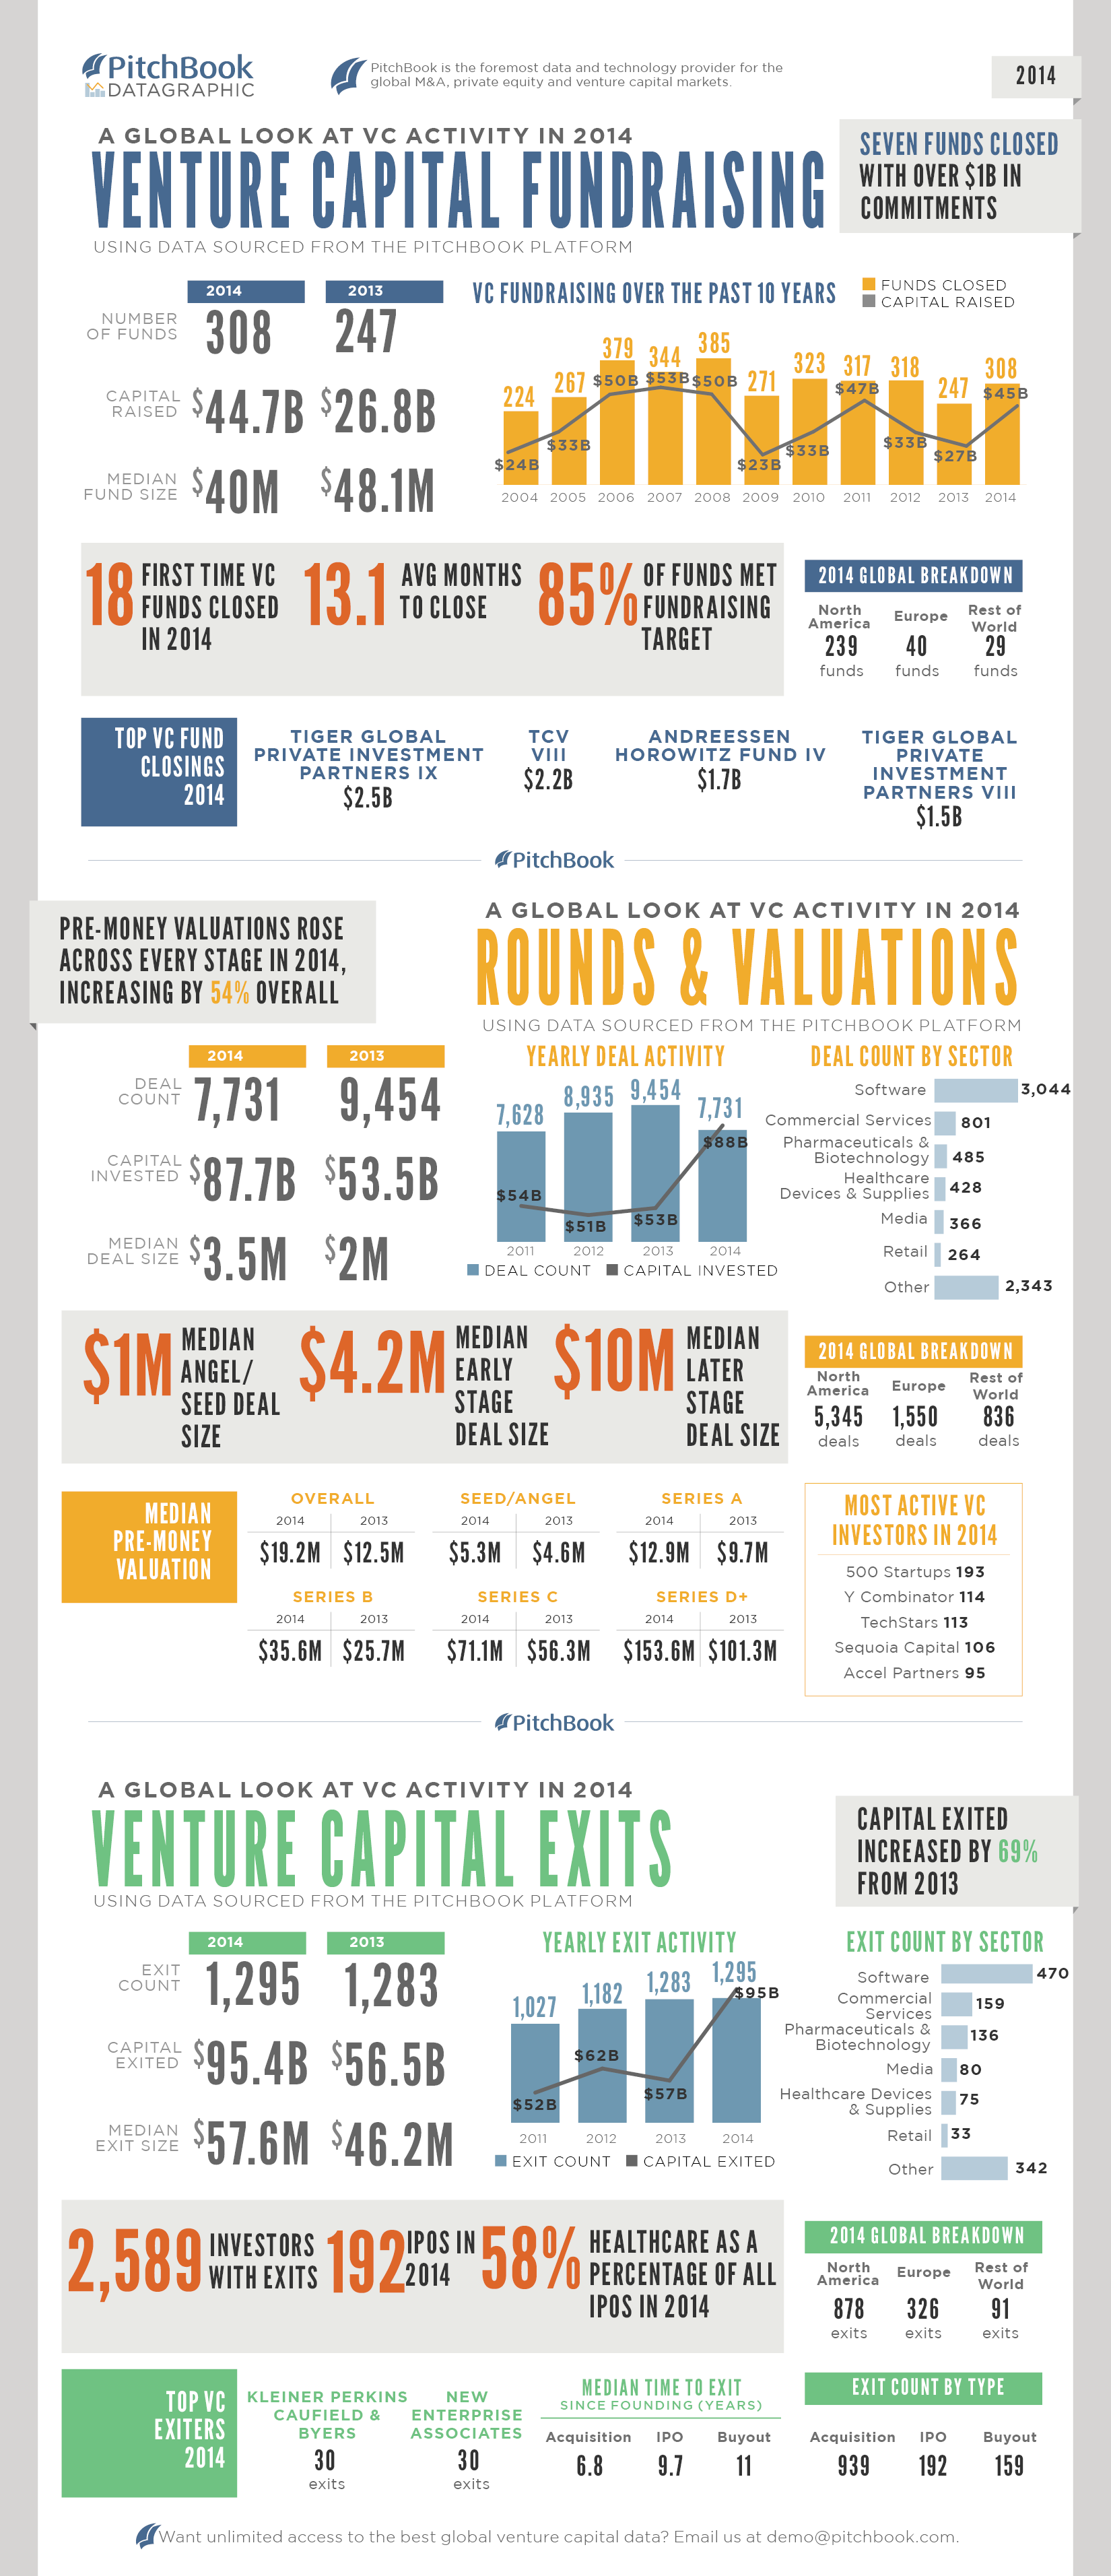 PitchBook_2014Annual_Global_Venture_Capital_DATAGRAPHIC